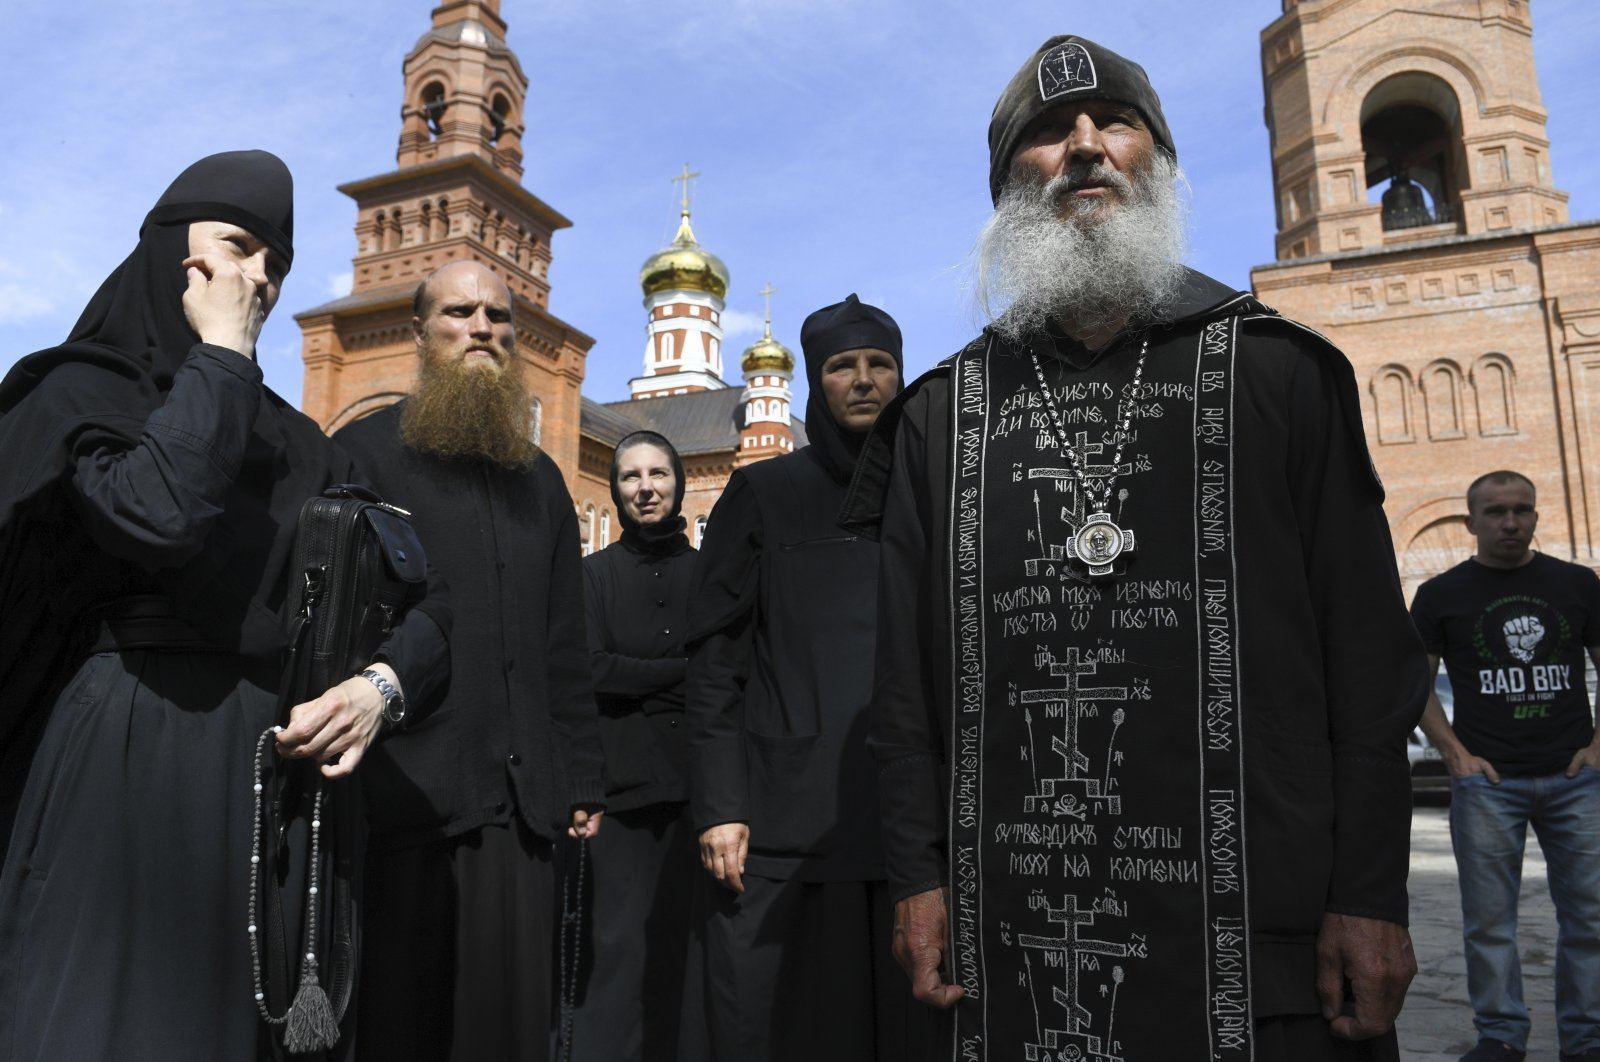 Father Sergiy (R), a Russian monk who defied the Russian Orthodox Church's leadership, speaks to journalists in Russia. Wednesday, June 17, 2020 (AP Photo)